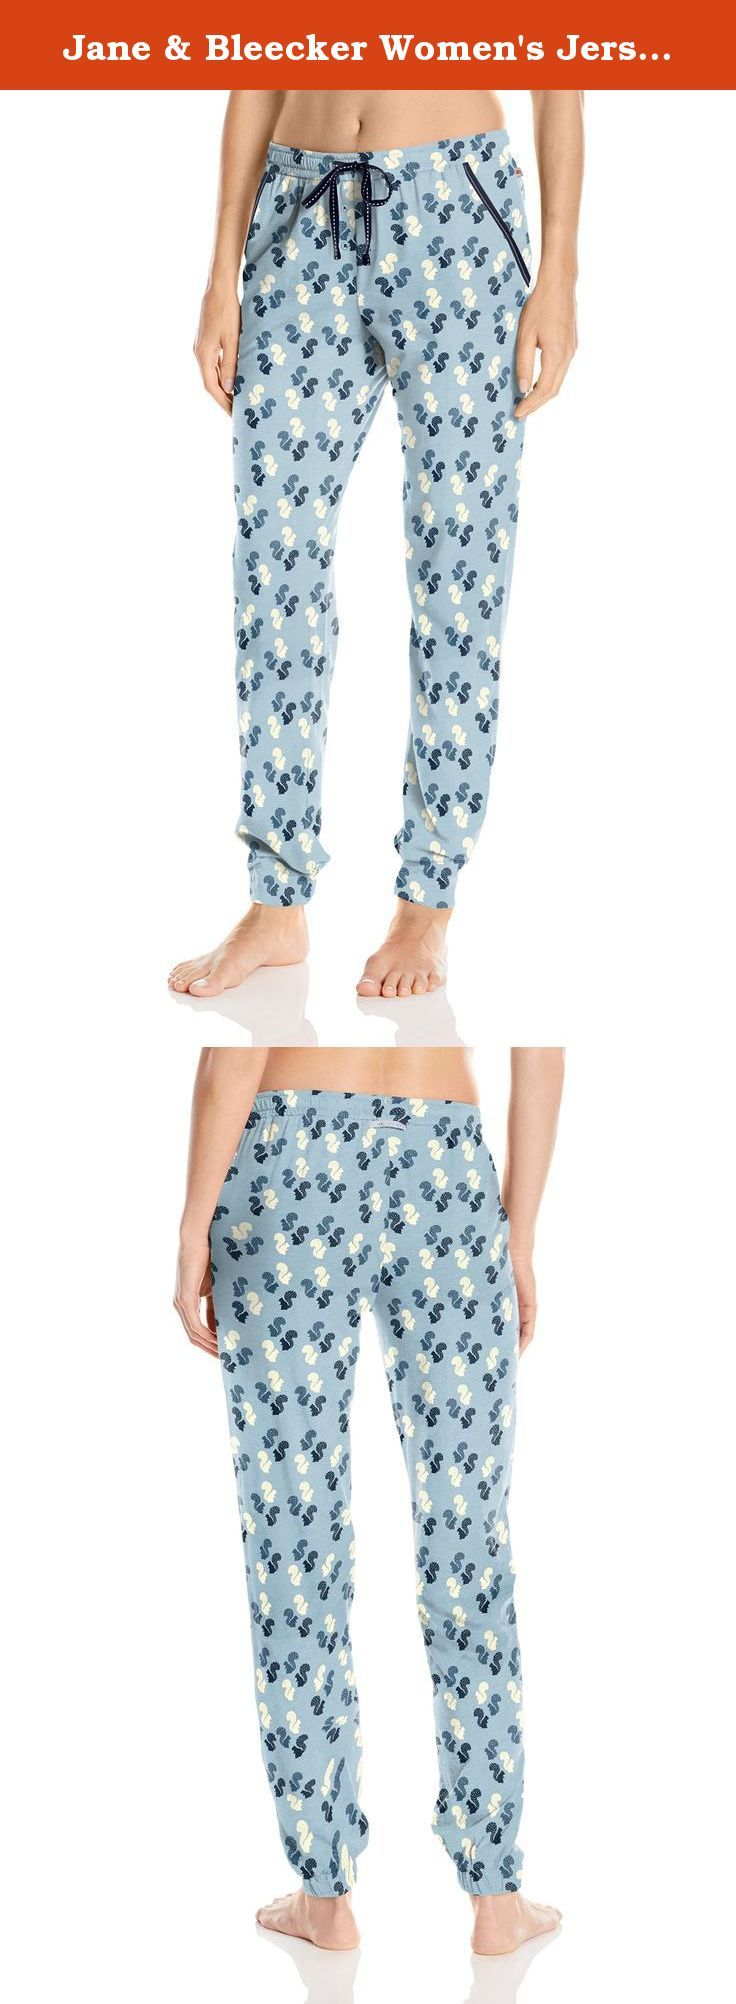 Jane & Bleecker Women's Jersey Pant, Park Squirrel, Large. Comfortably lounge day in and day out while sporting the Jane & Bleecker super soft jersey lounge pant.